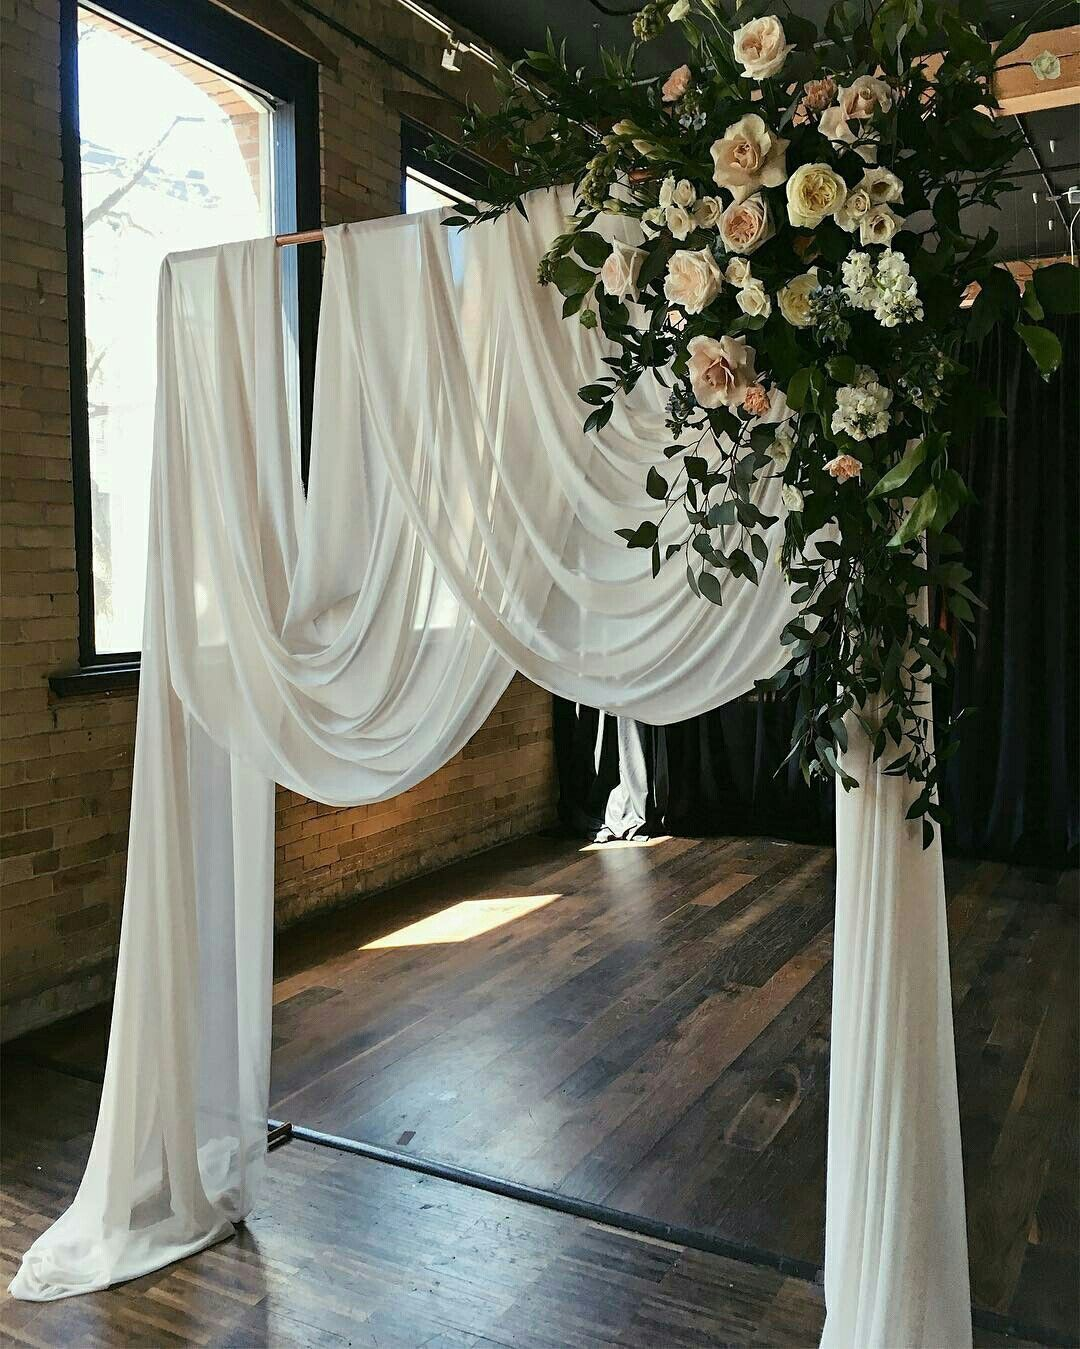 25 Chic And Easy Rustic Wedding Arch Ideas For Diy Brides: 25 Inspirational Wedding Ceremony Arbor & Arch Ideas